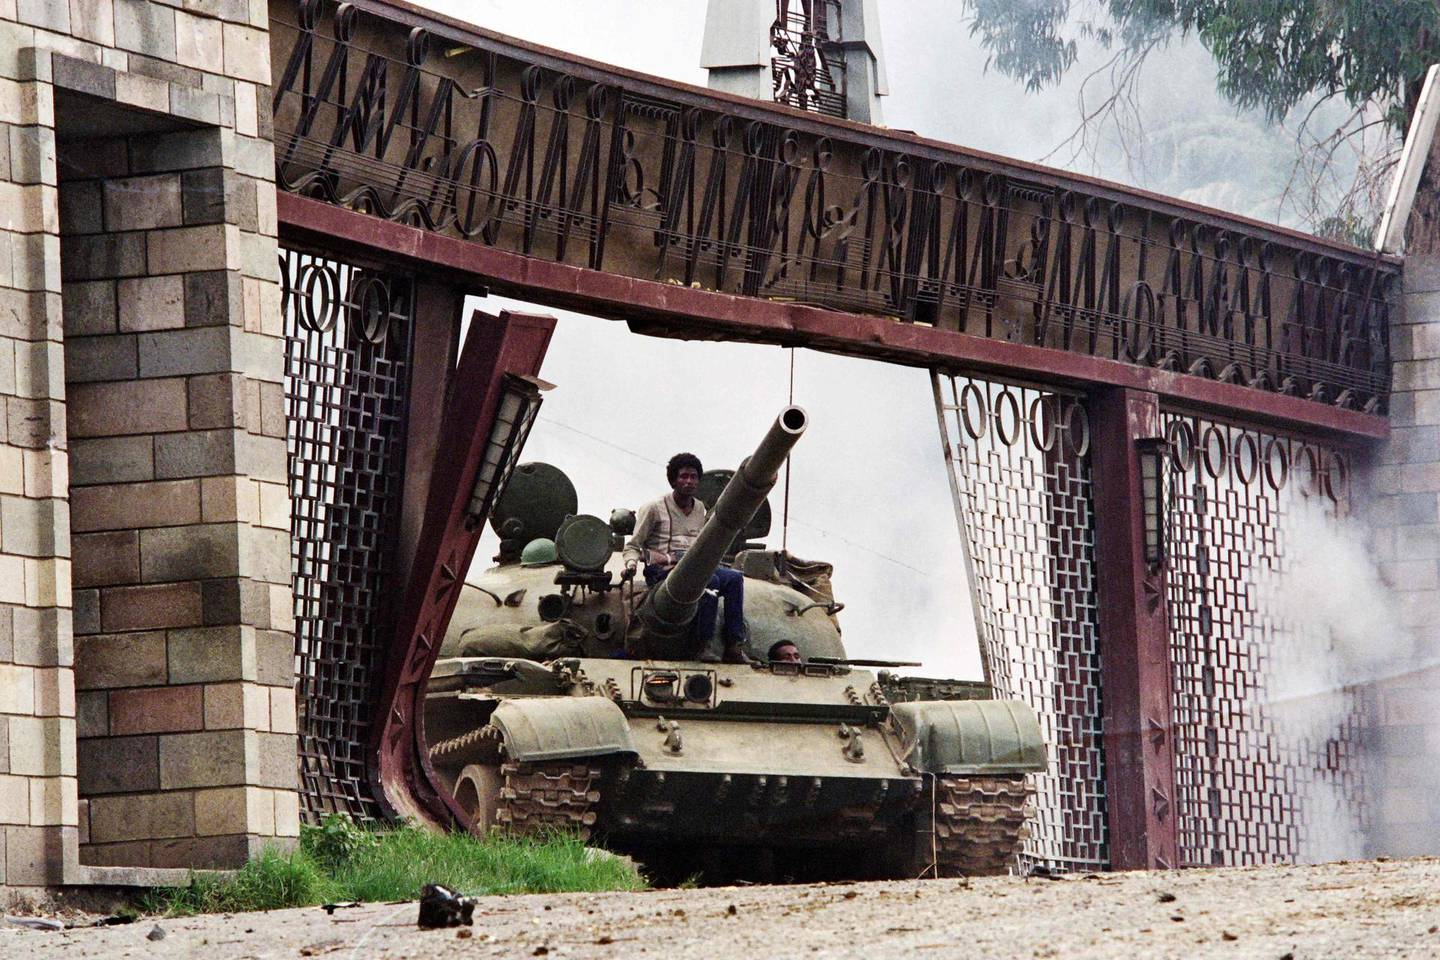 (FILES) In this file photo taken on May 28, 1991 rebels of the Ethiopian People's Revolutionary Democratic Front (EPRDF) use a tank to enter in the presidential palace in Addis Ababa.  Spearhead in the fight against the Derg dictatorship, then a real power in Ethiopia for a long time, the Tigray People's Liberation Front (TPLF), which the Ethiopian army fights in its northern stronghold of Tigray, has shaped recent history of the country. / AFP / Jerome DELAY